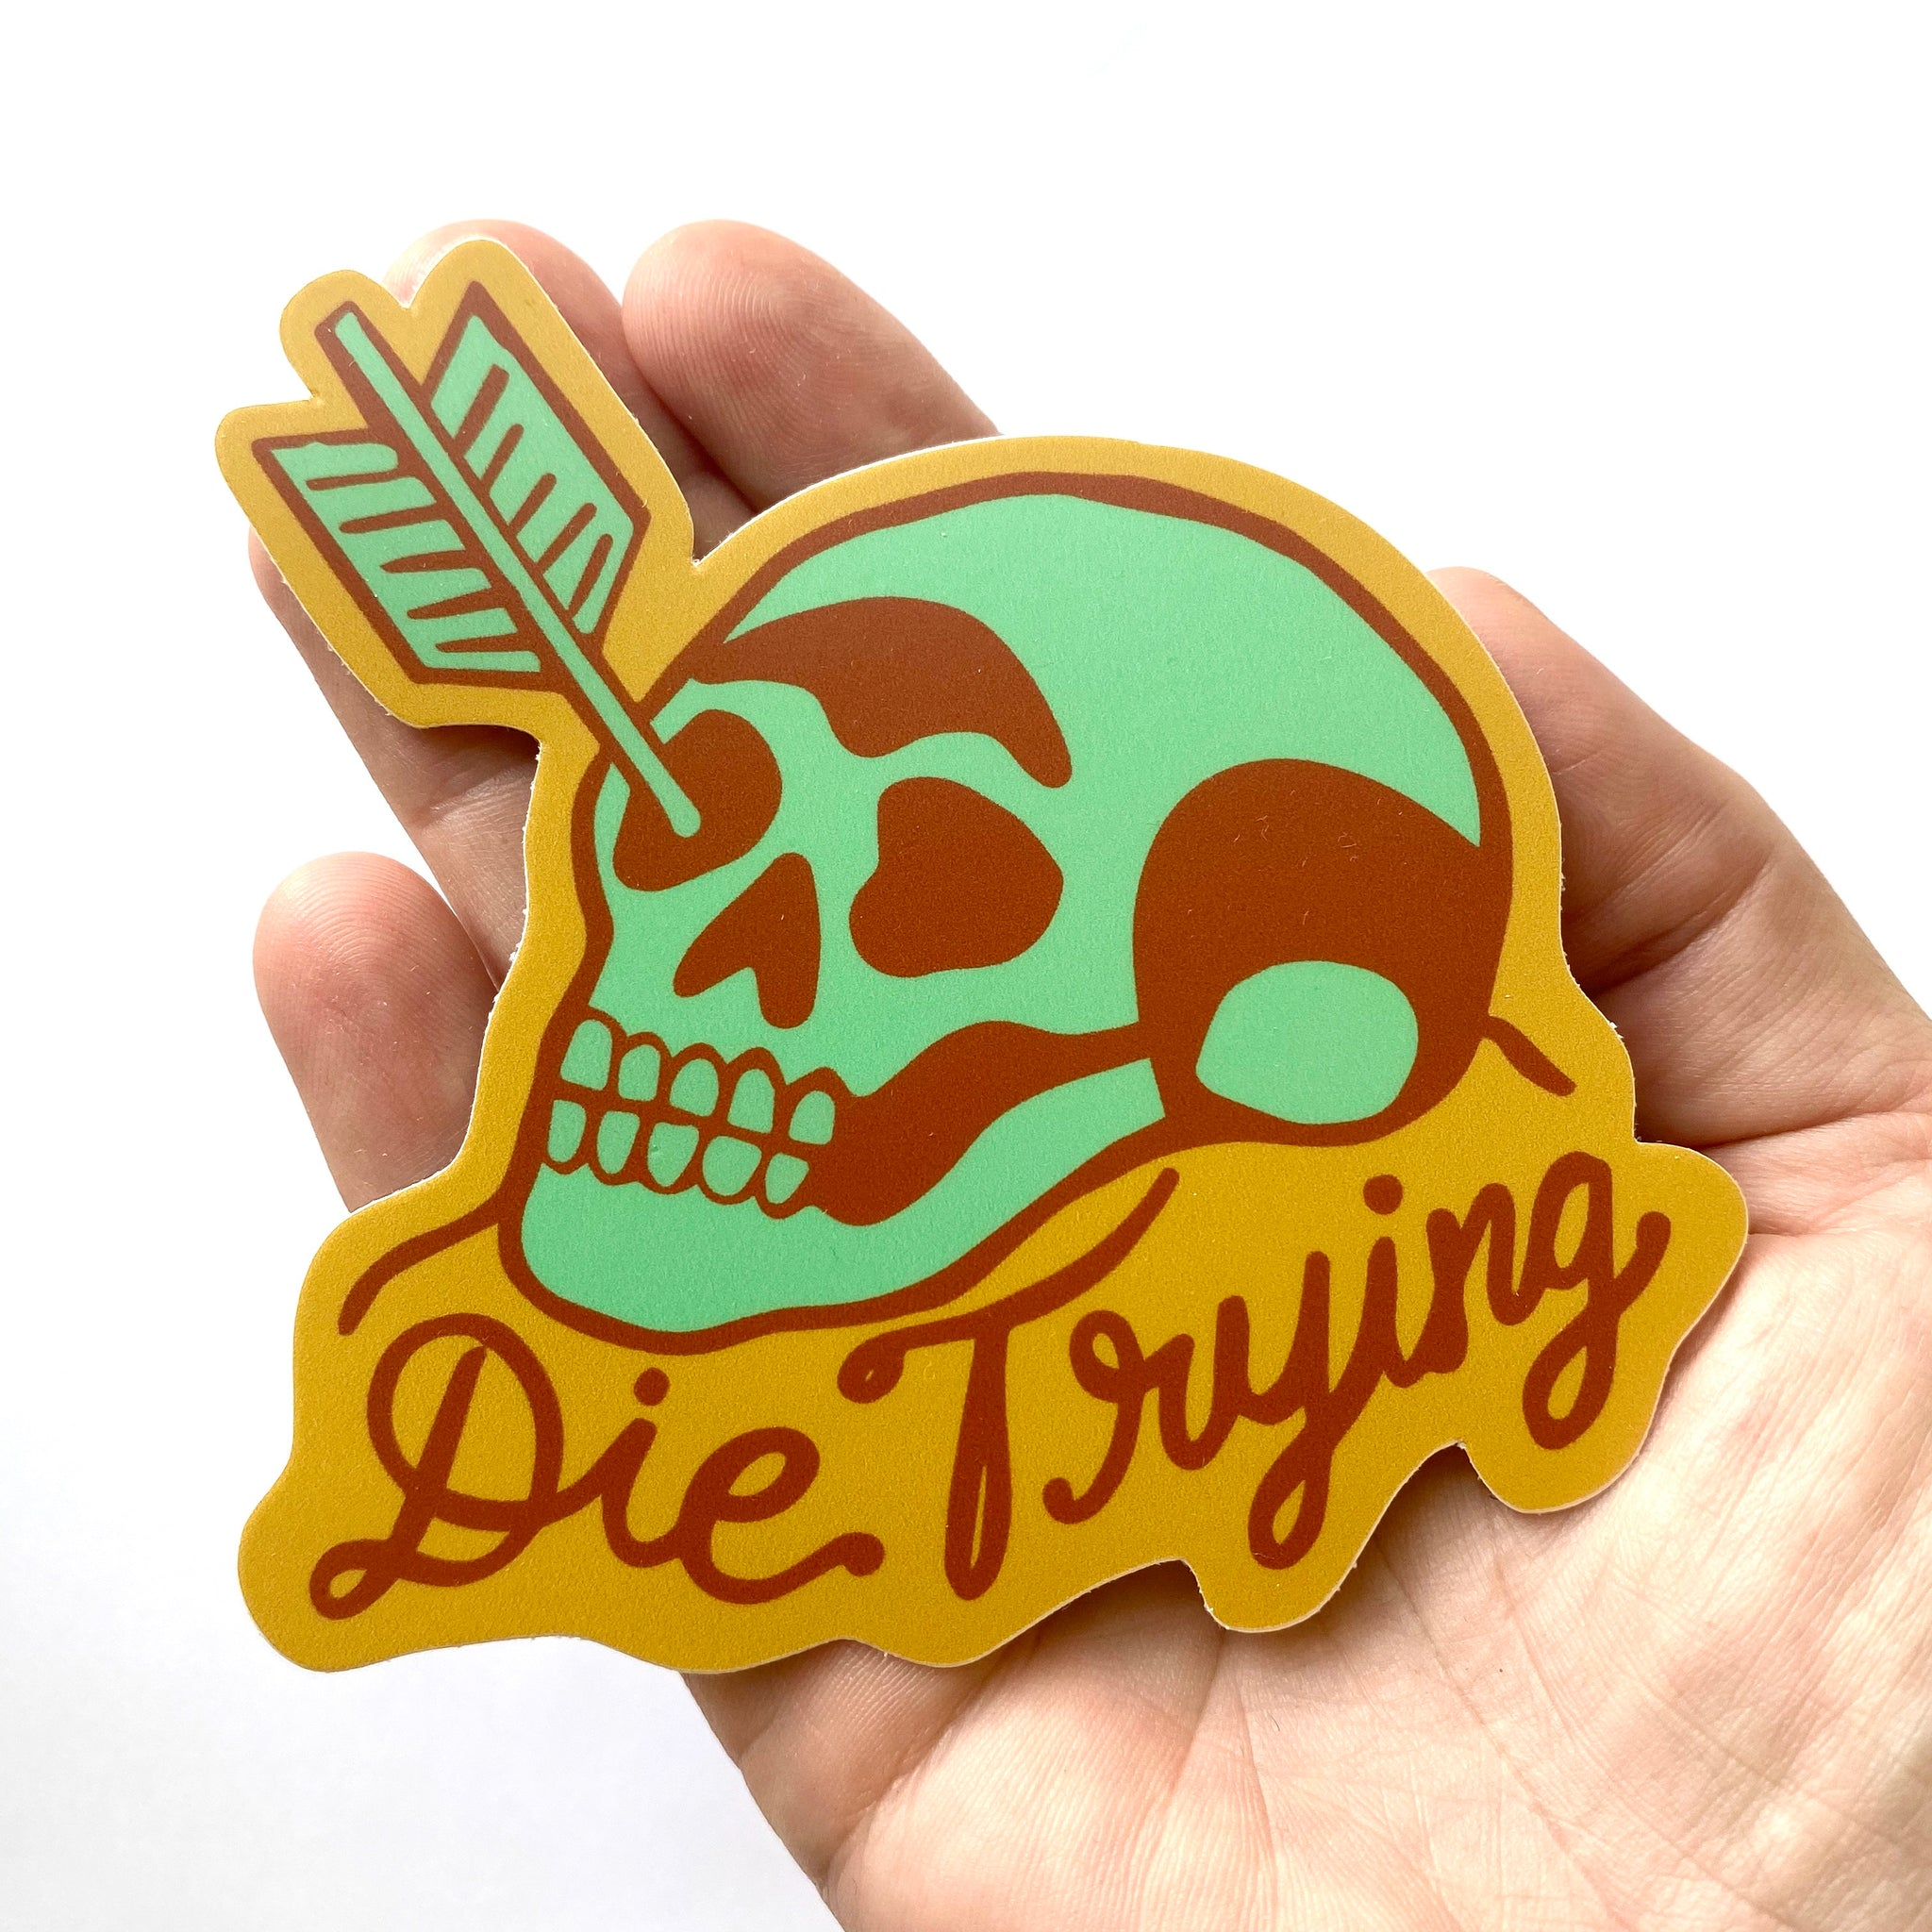 Die Trying Sticker - Mint & Rust